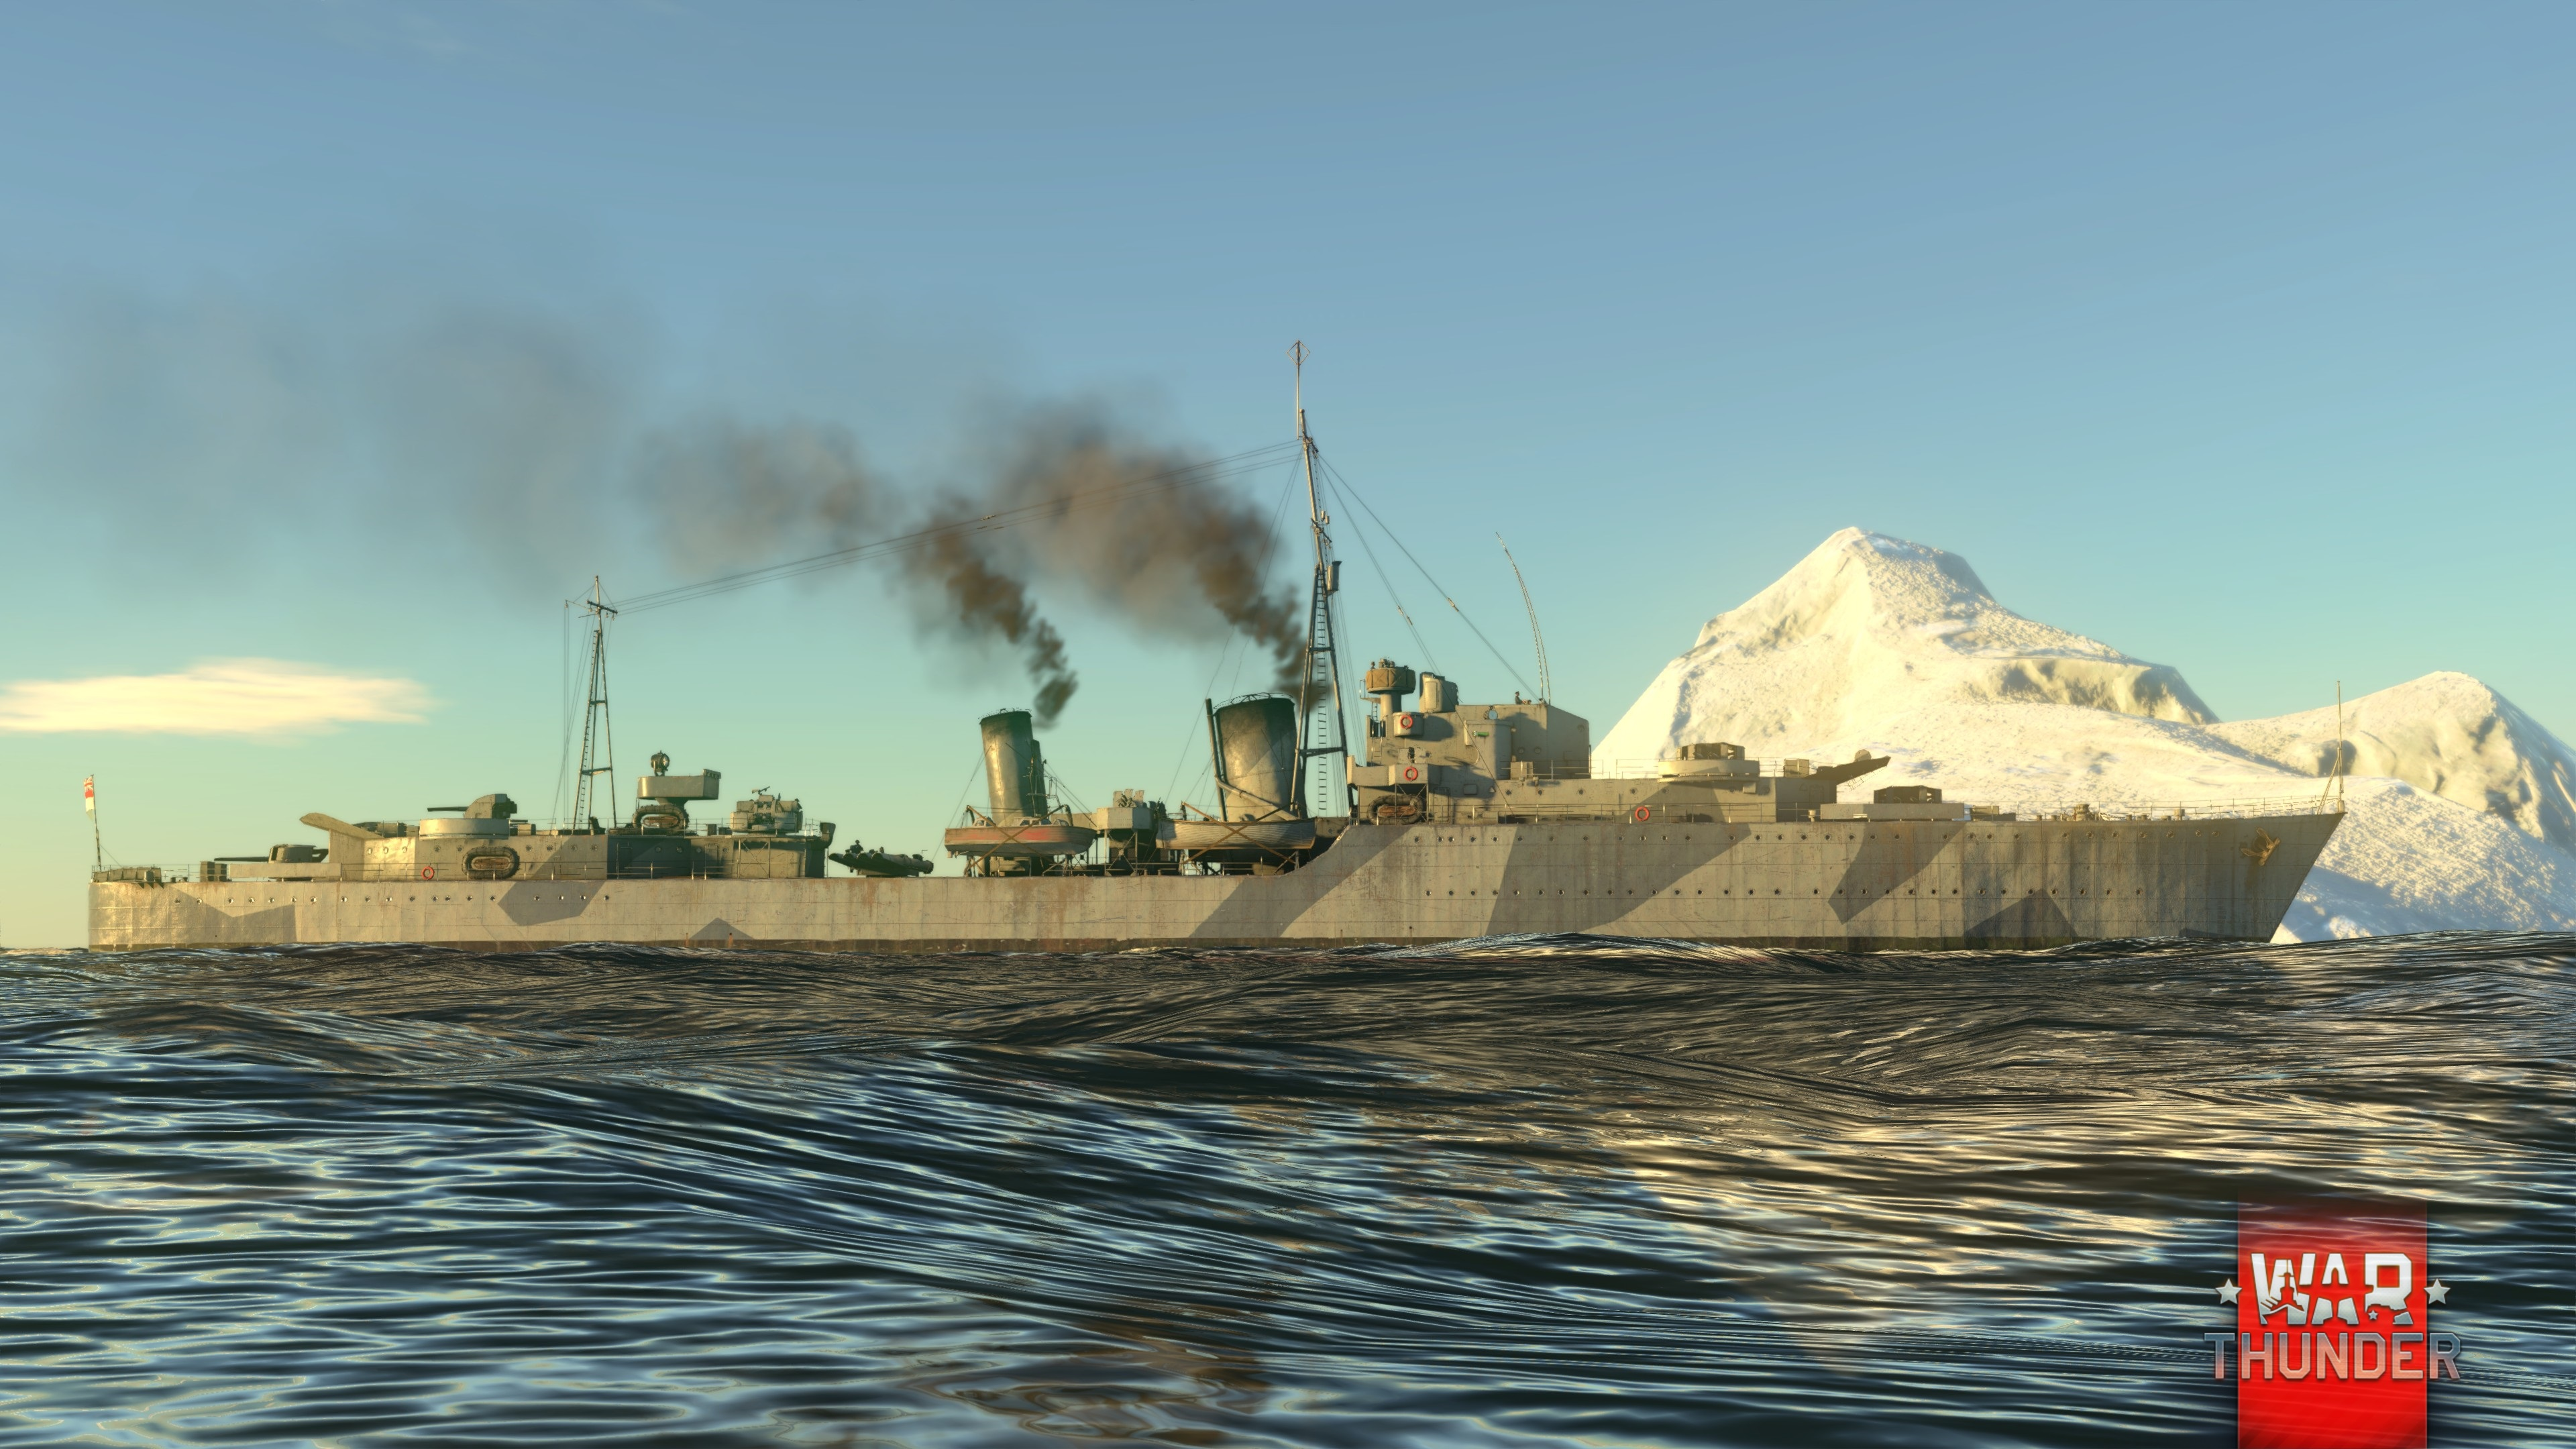 War Thunder :: [Fleet] A new stage in Naval battle testing